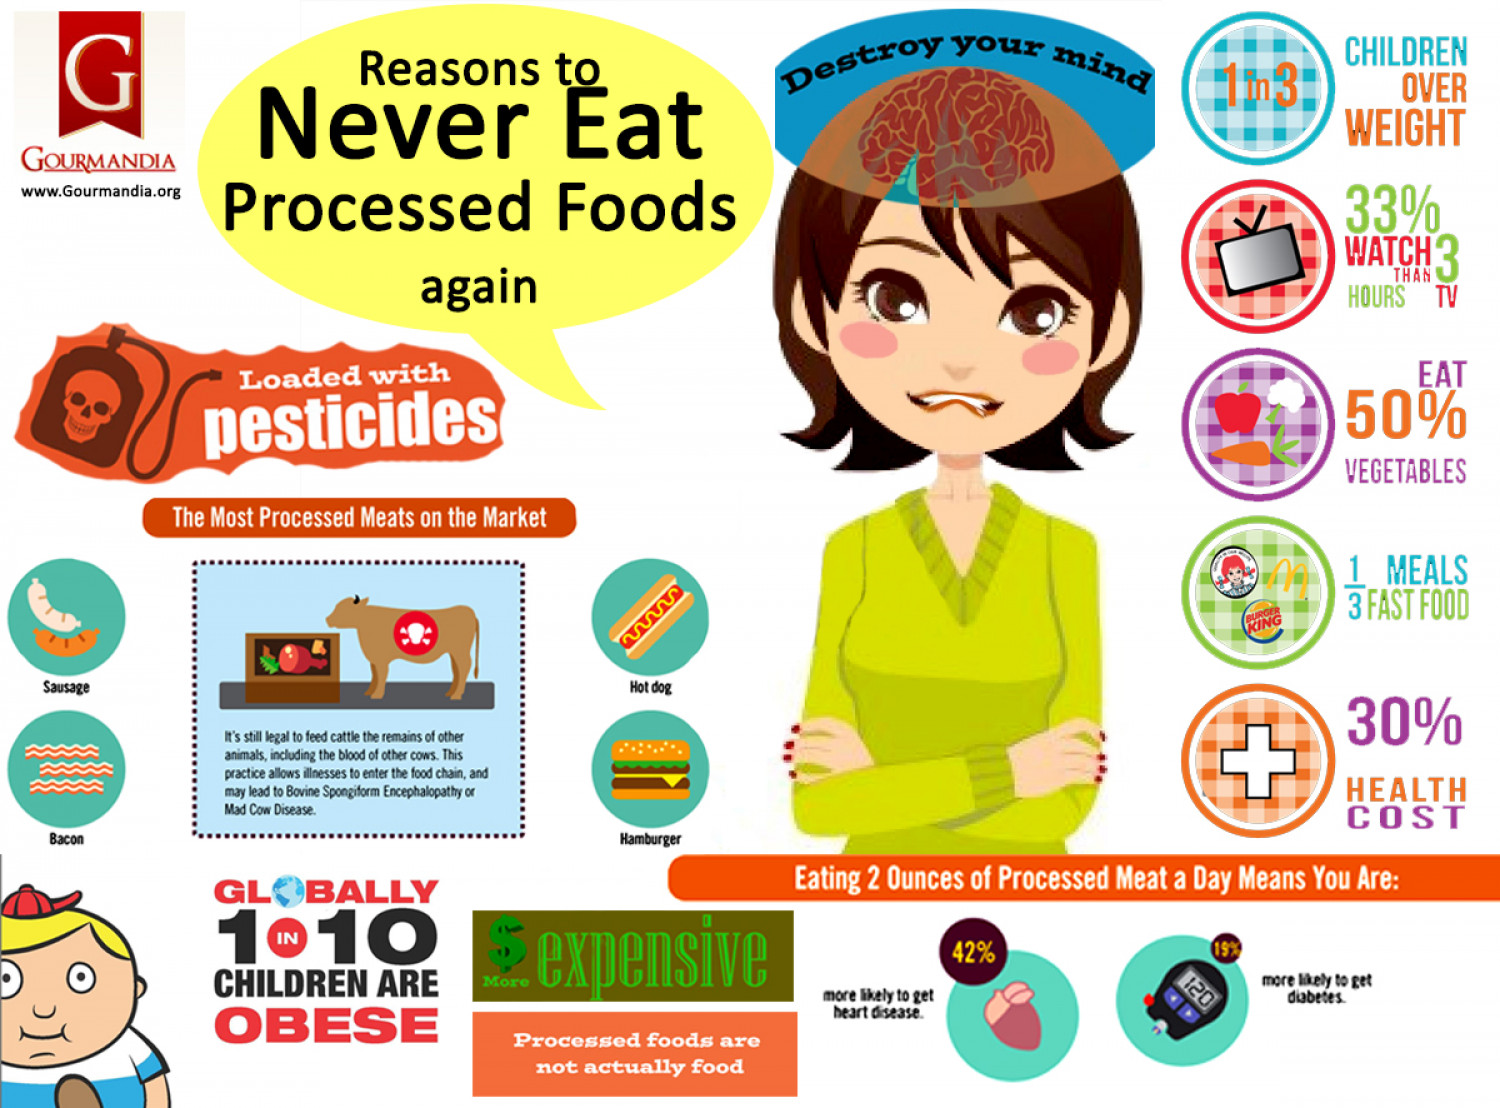 Reasons to Never Eat Processed Foods Again Infographic